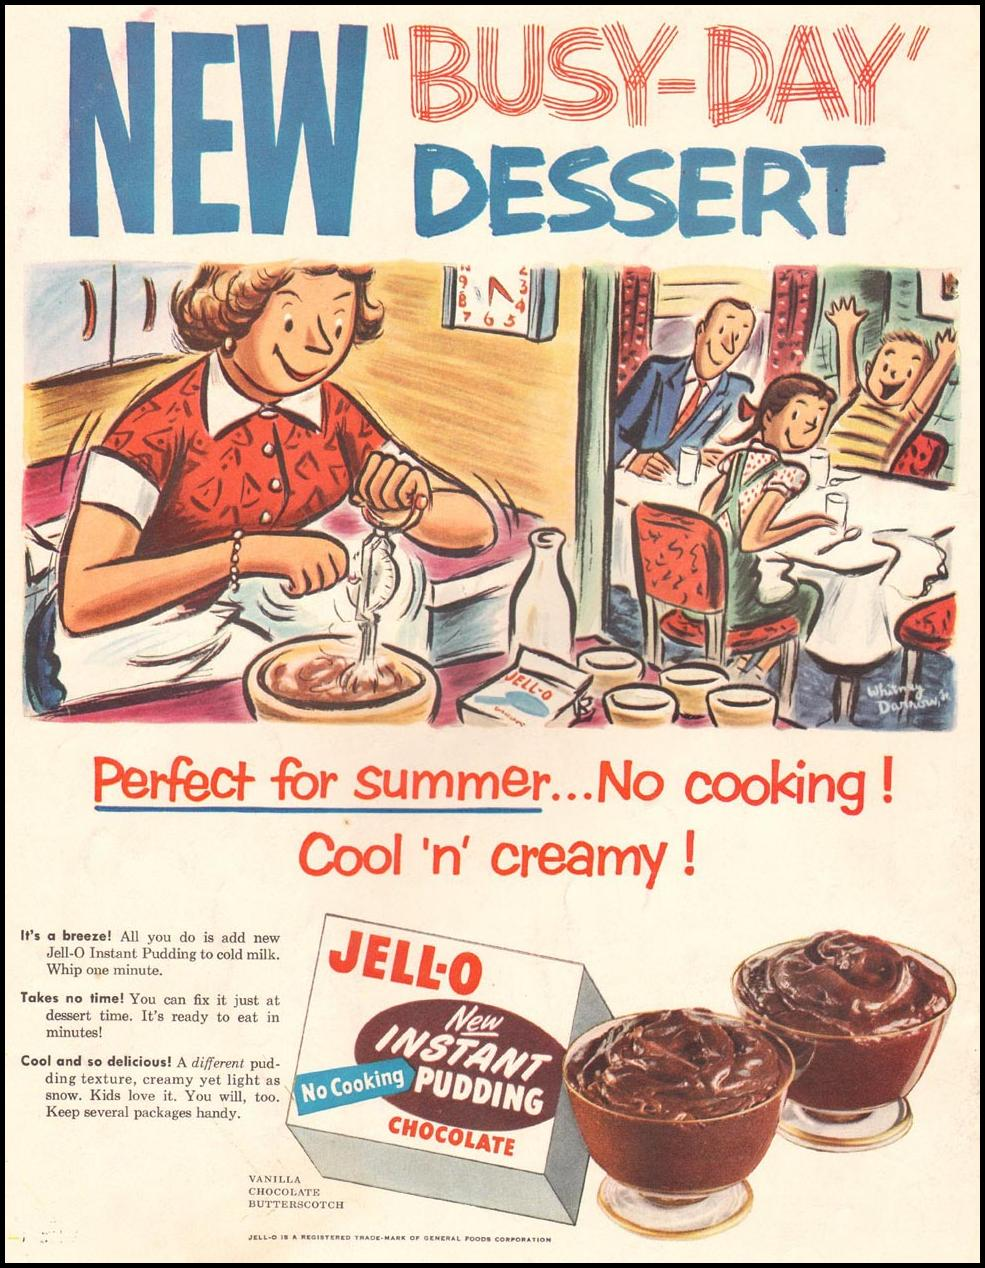 JELL-O INSTANT PUDDING LADIES' HOME JOURNAL 07/01/1954 BACK COVER